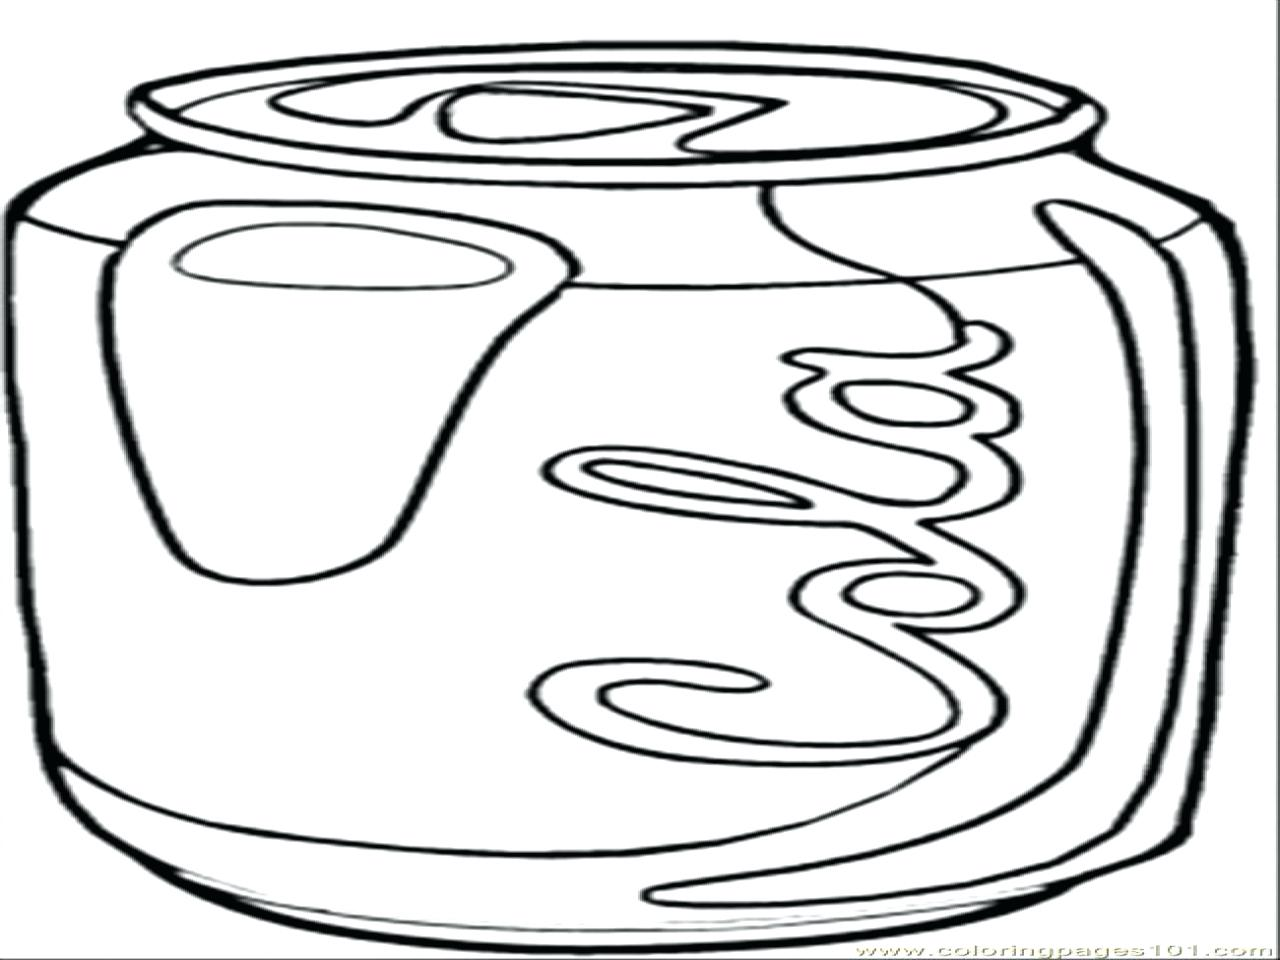 1280x960 Coloring Pages Christmas Reindeer Drink Can Color Online Coke